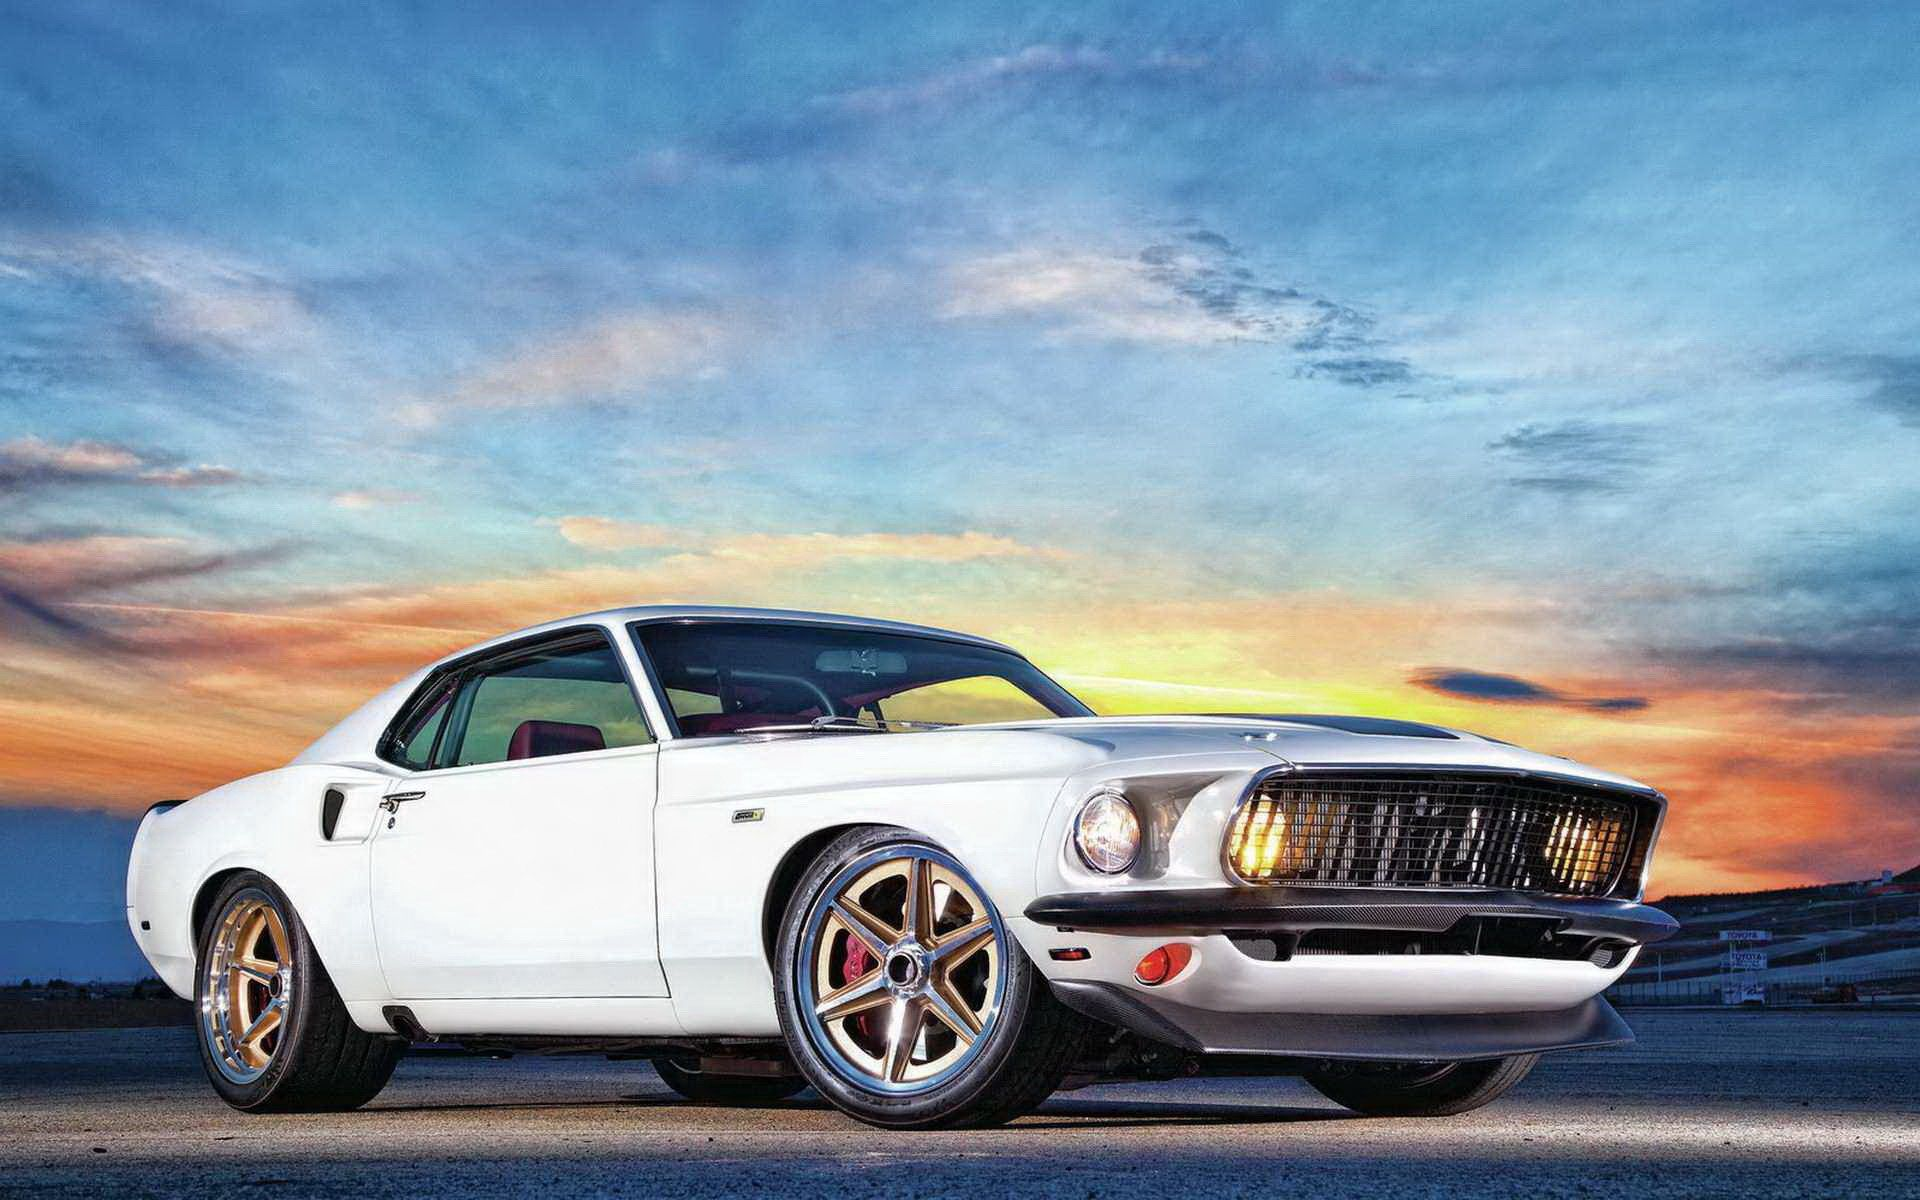 83591 free wallpaper 720x1280 for phone, download images Cars, Side View, Ford Mustang, Muscle Car 720x1280 for mobile